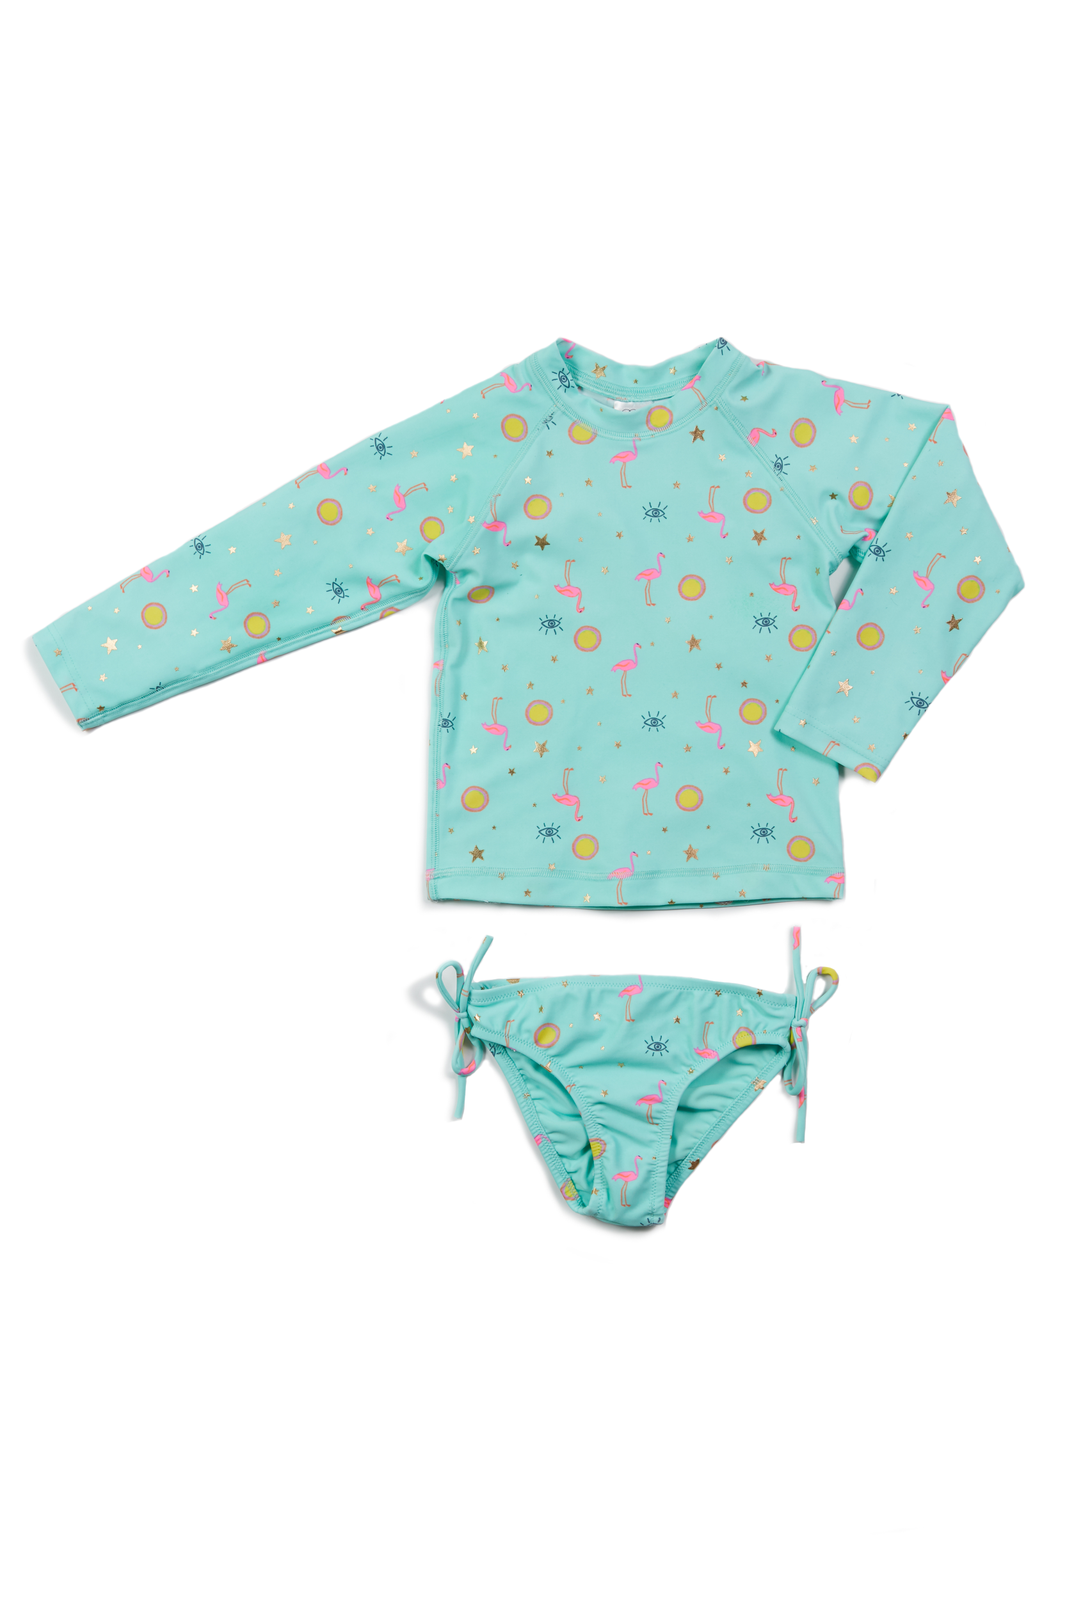 Egg By Susan Lazar - Kaitlyn Two Piece Swimsuit - Aqua